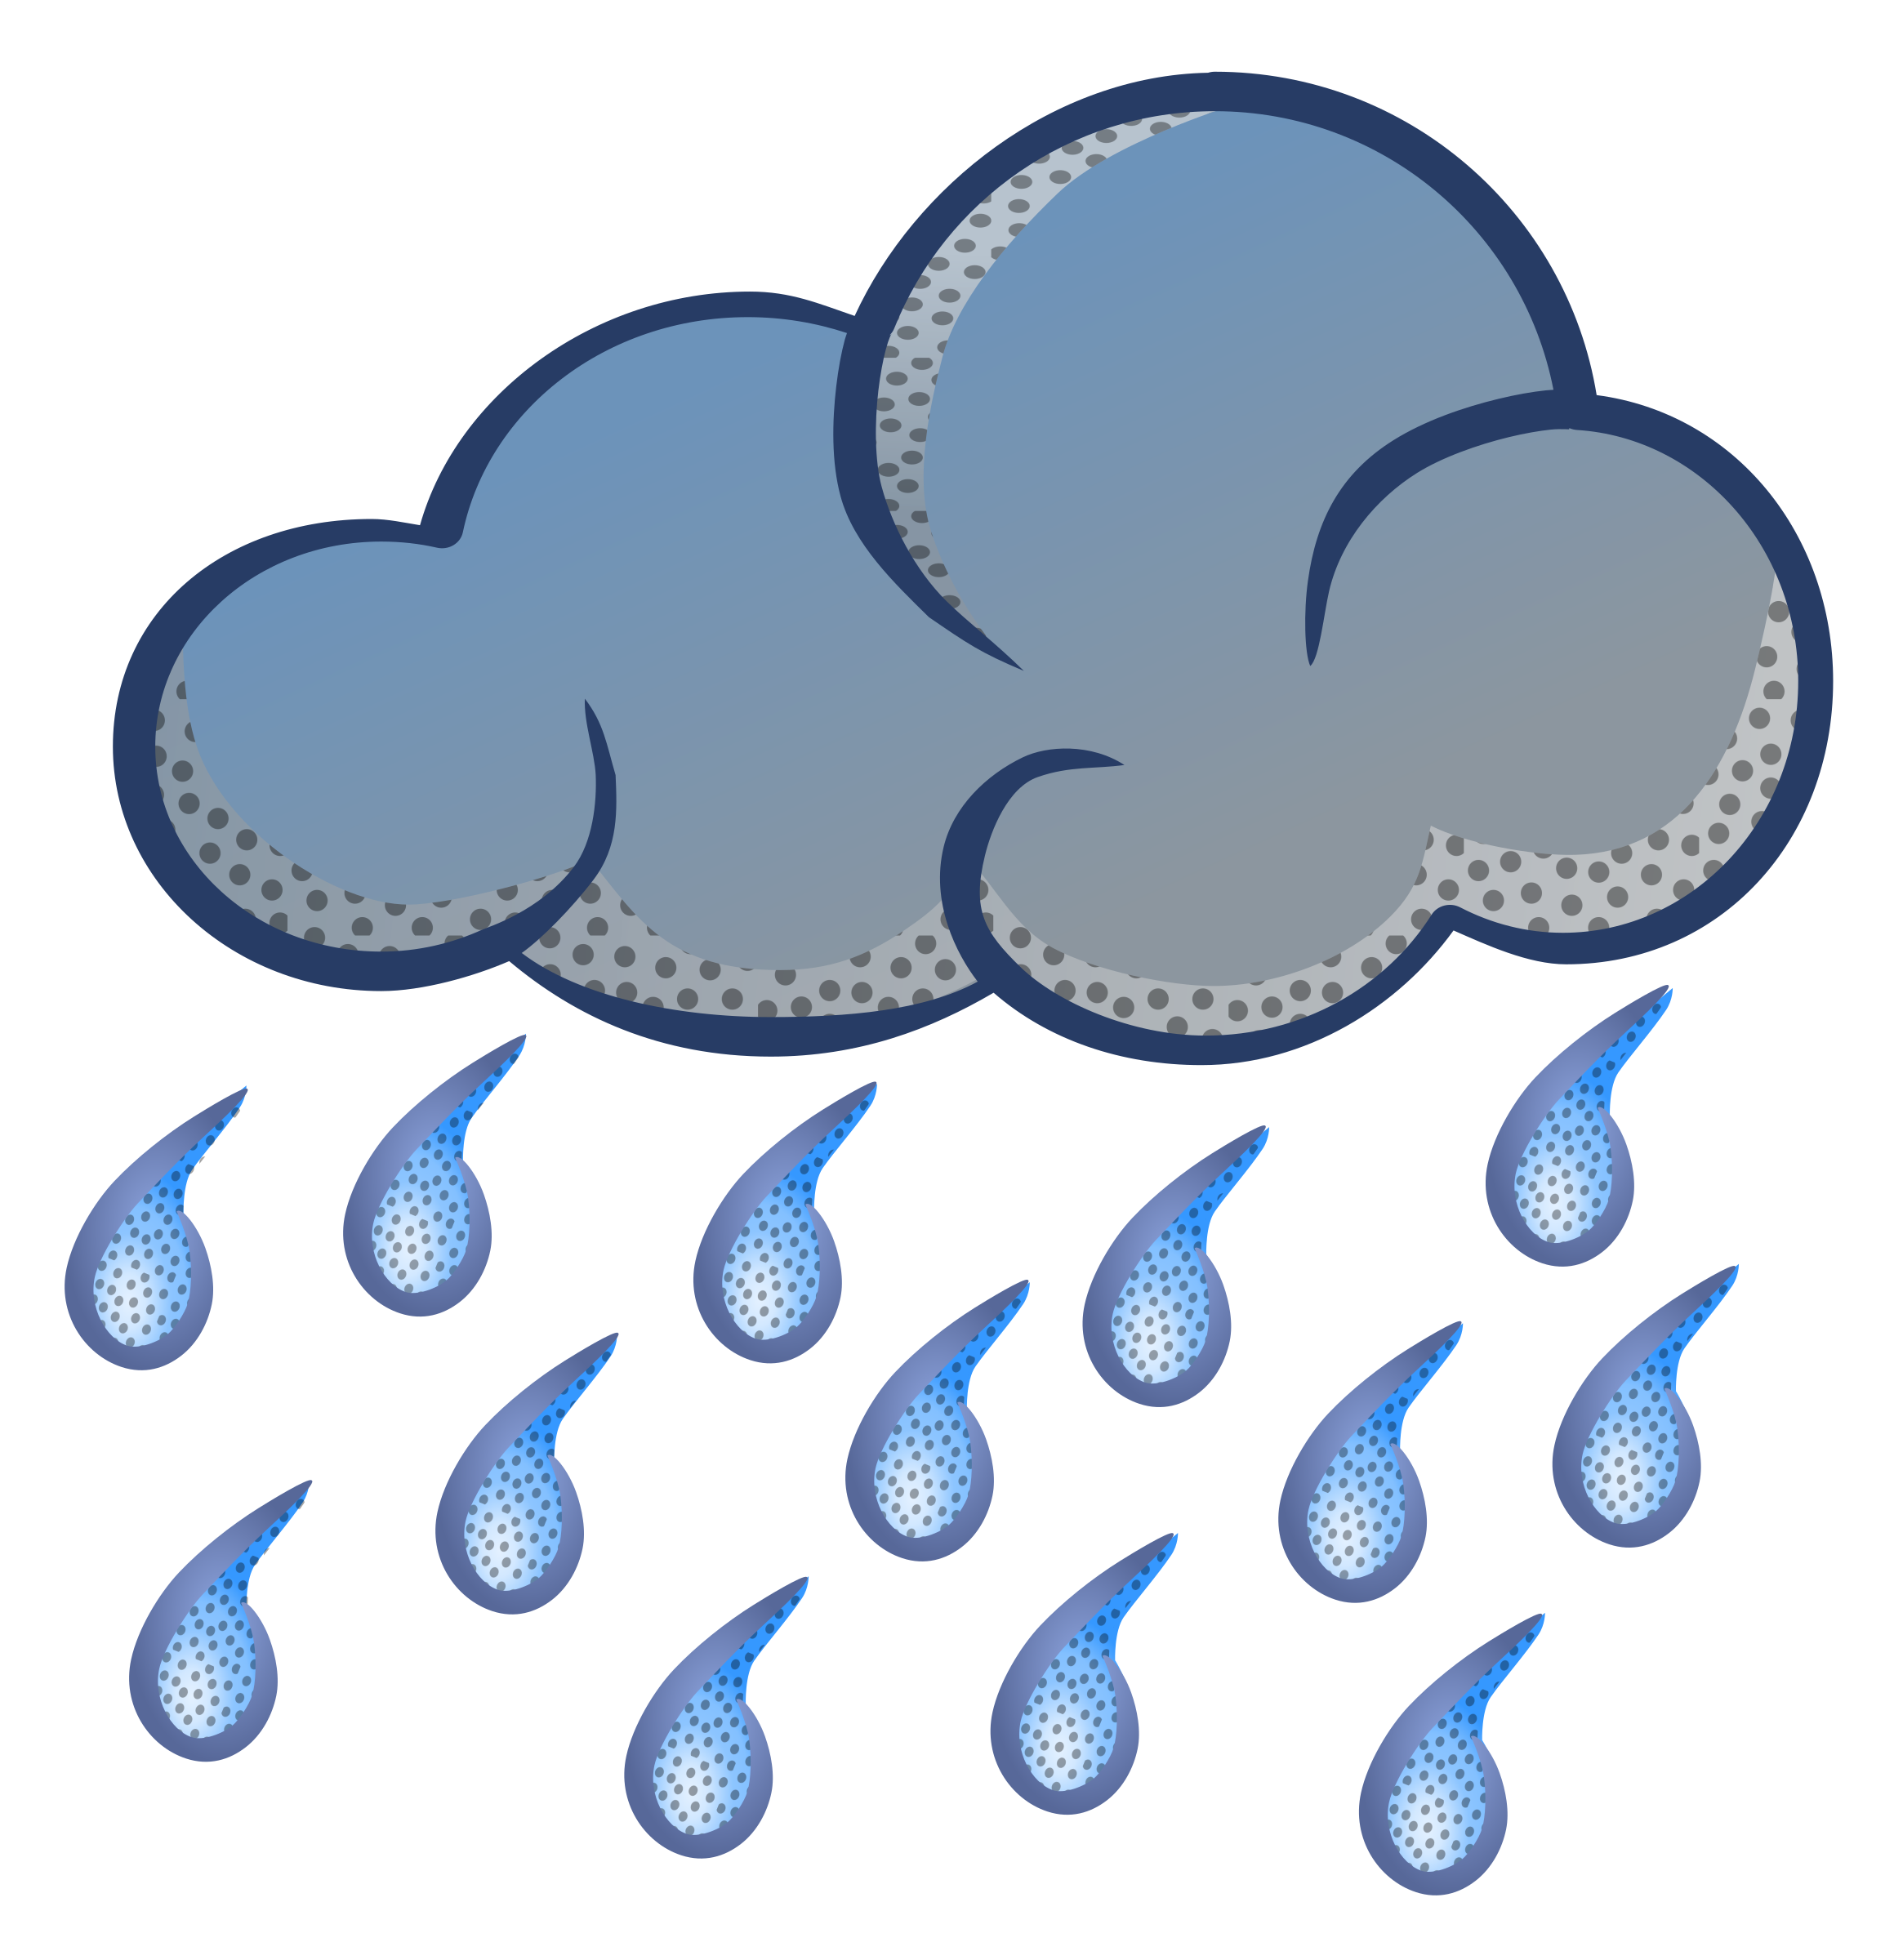 Cartoon rain cloud free. Sunny clipart rainy day